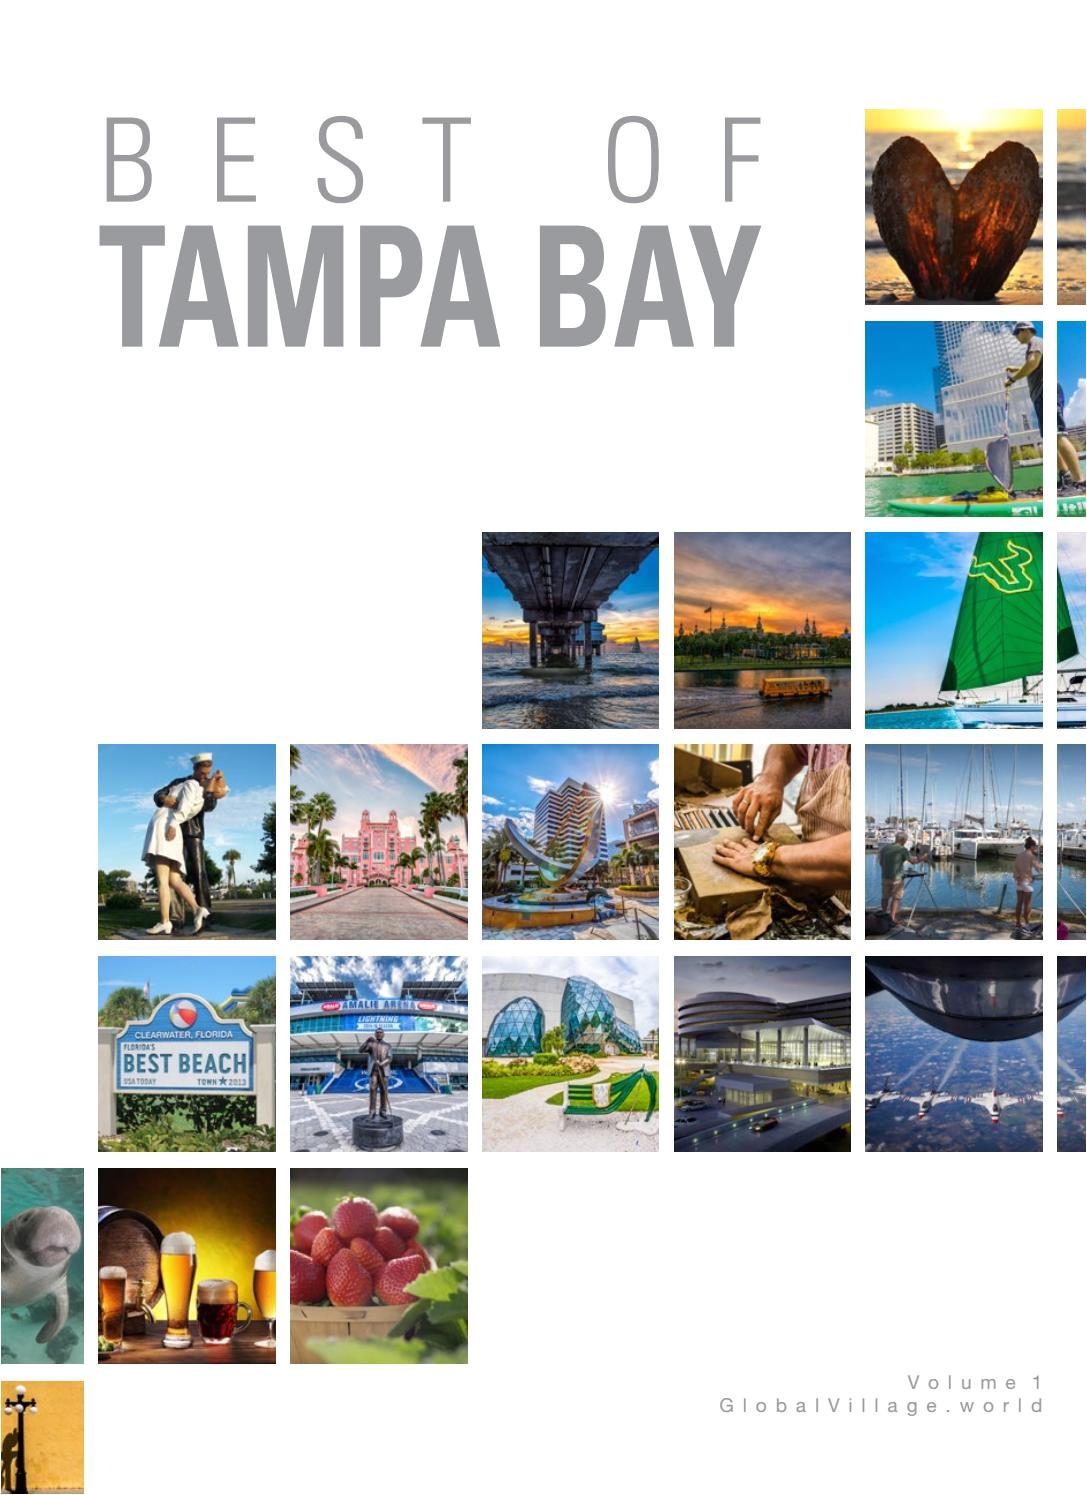 Macdill Afb Tampa Fl Zip Code Best Of Tampa Bay Vol 1 by Sven Boermeester issuu